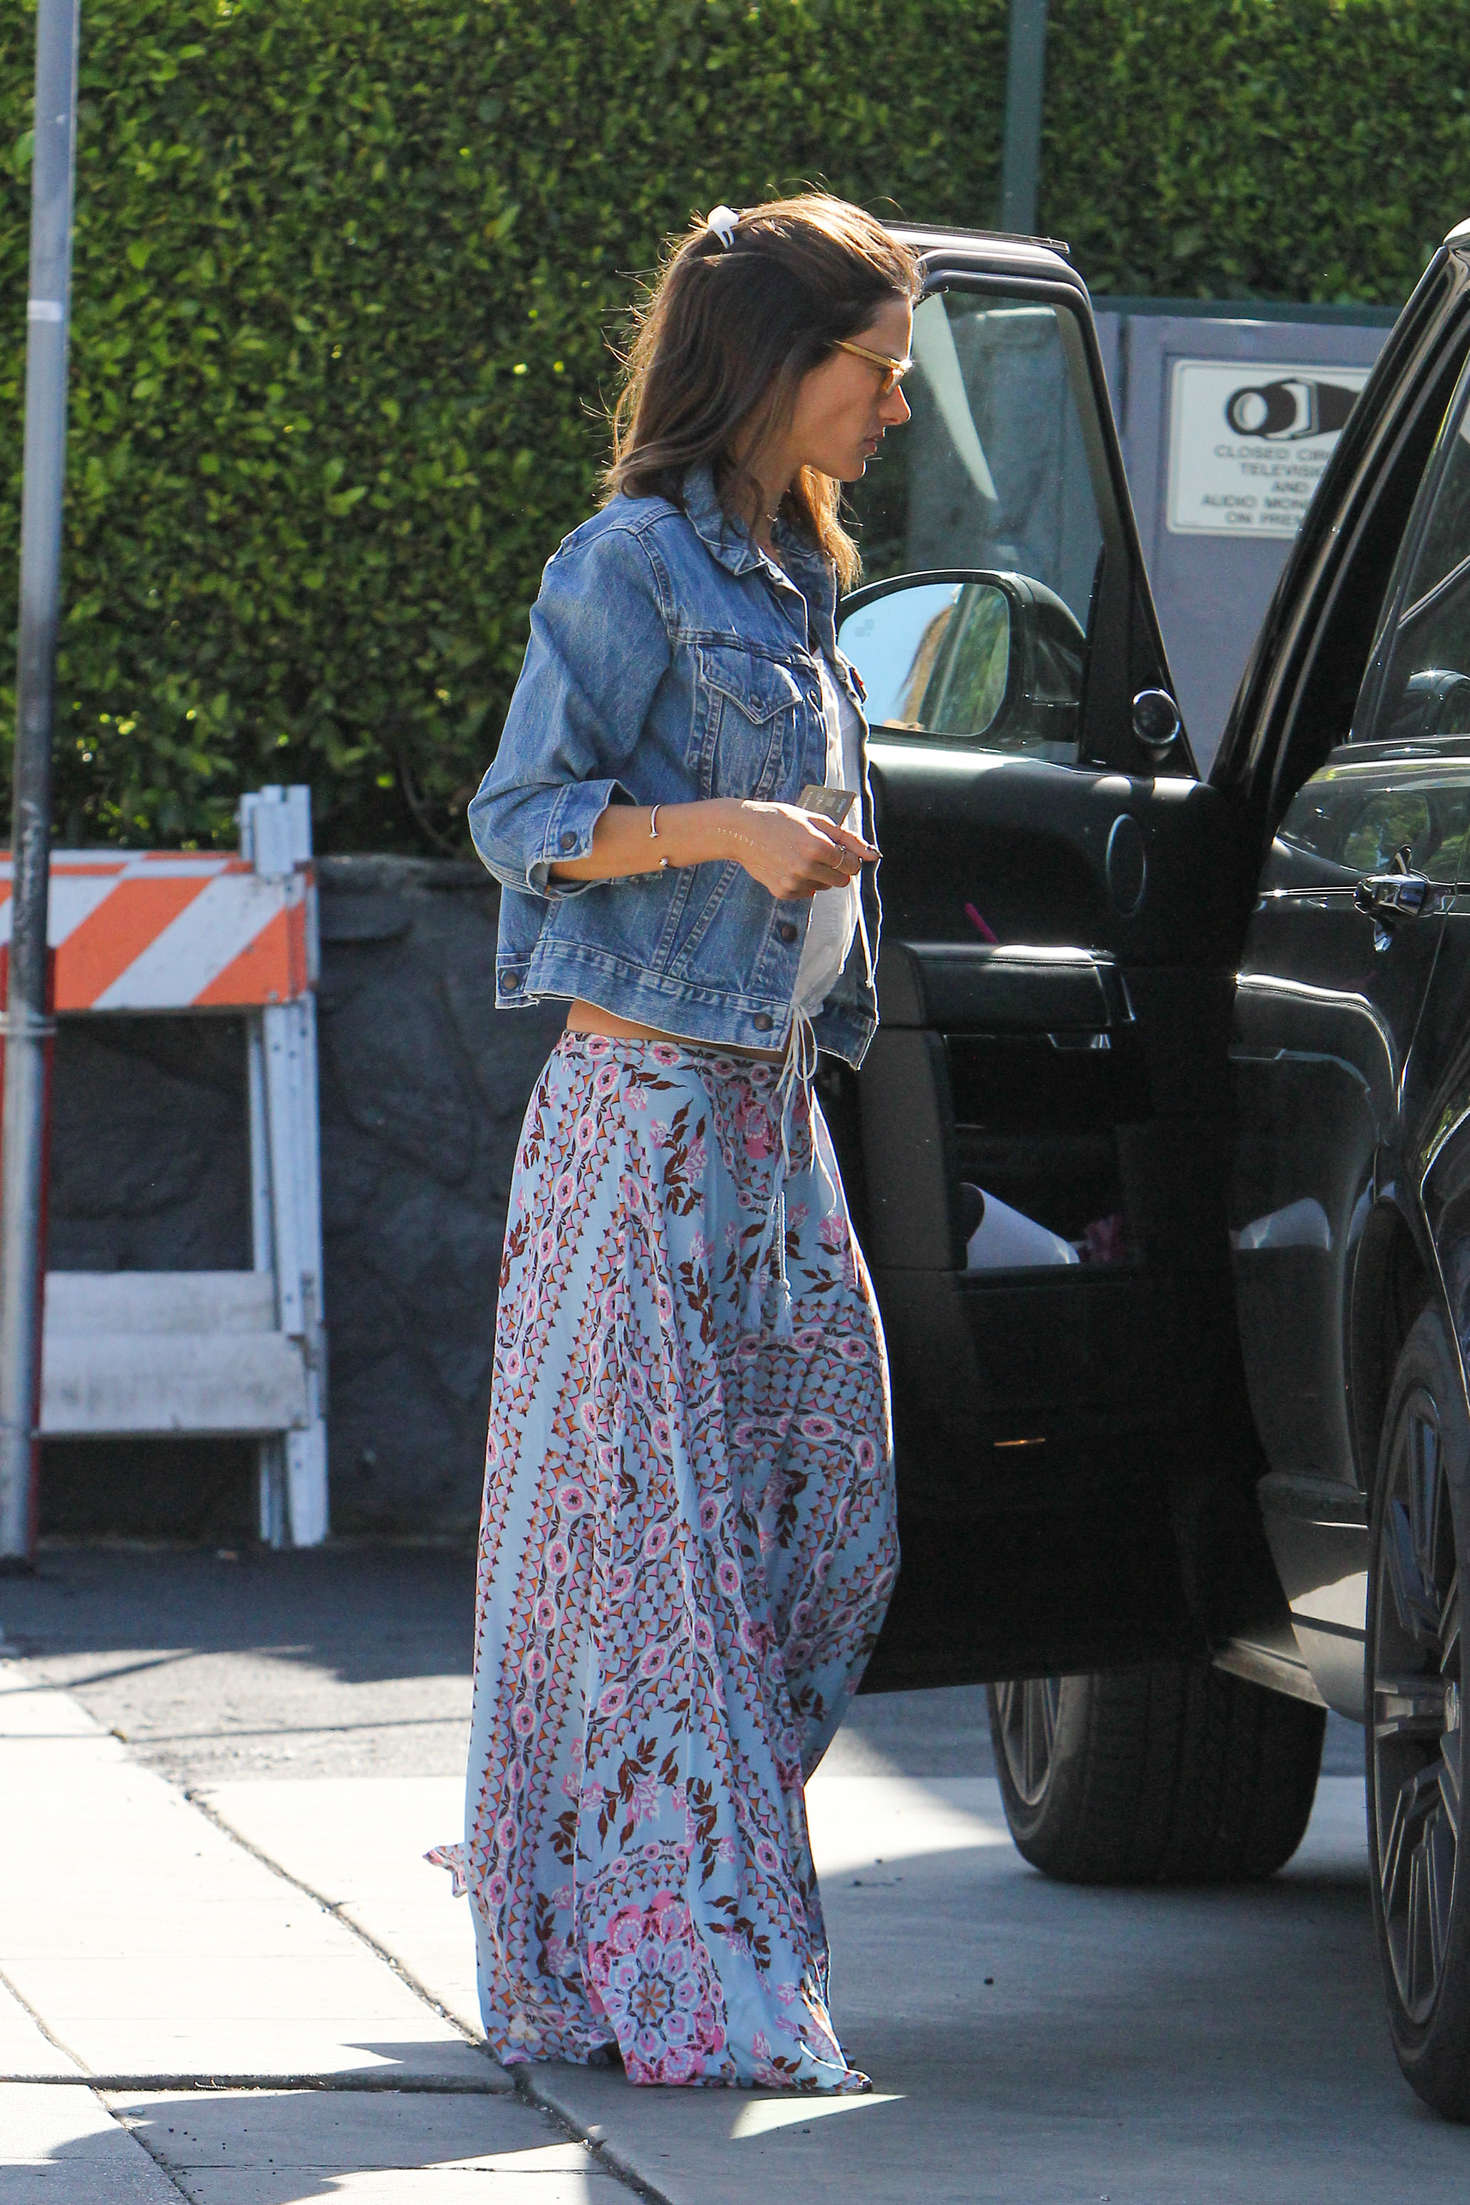 Alessandra Ambrosio in Long Skirt at a gas station in LA